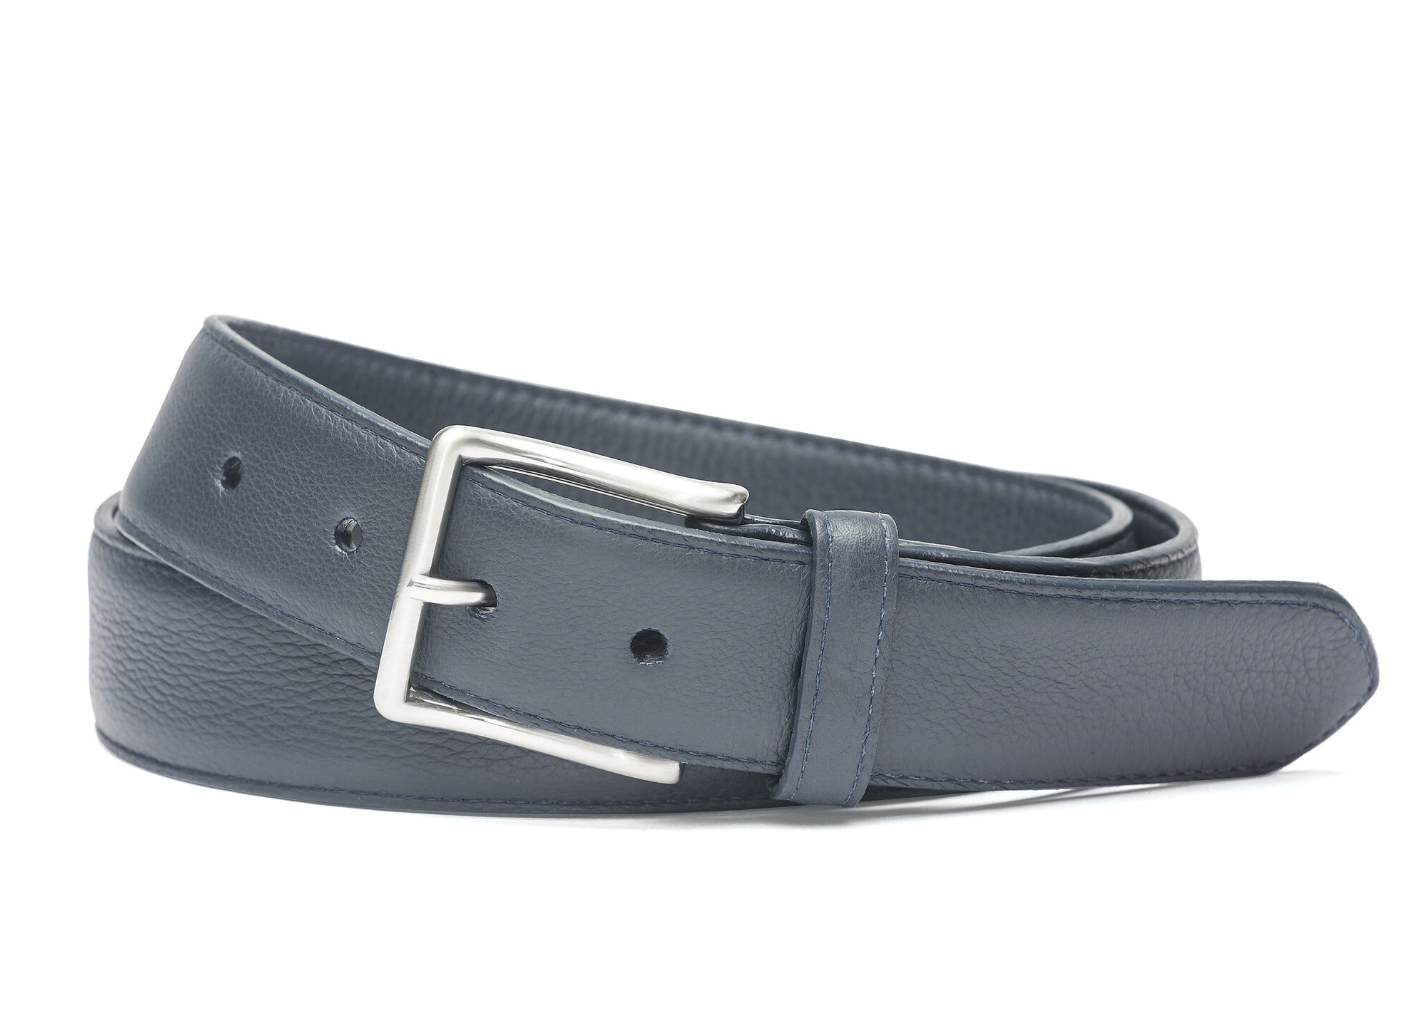 W.KLEINGBERG HIGH PEBBLED BELT - NAVY WITH COGNAC STITCHING